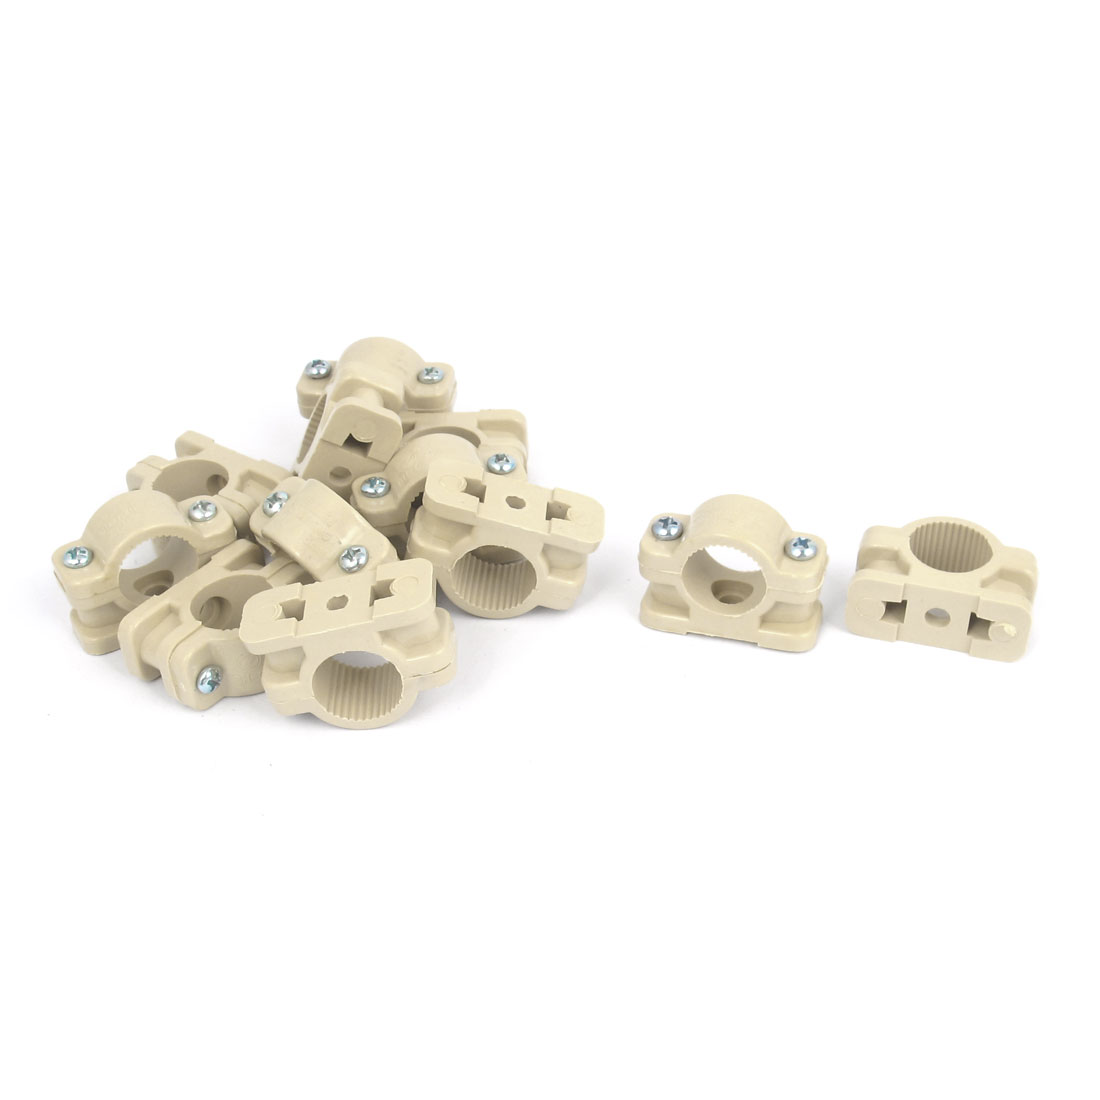 18mm Dia Wall Mounted Plastic Pipe Clip Clamp Fastener Khaki 12pcs